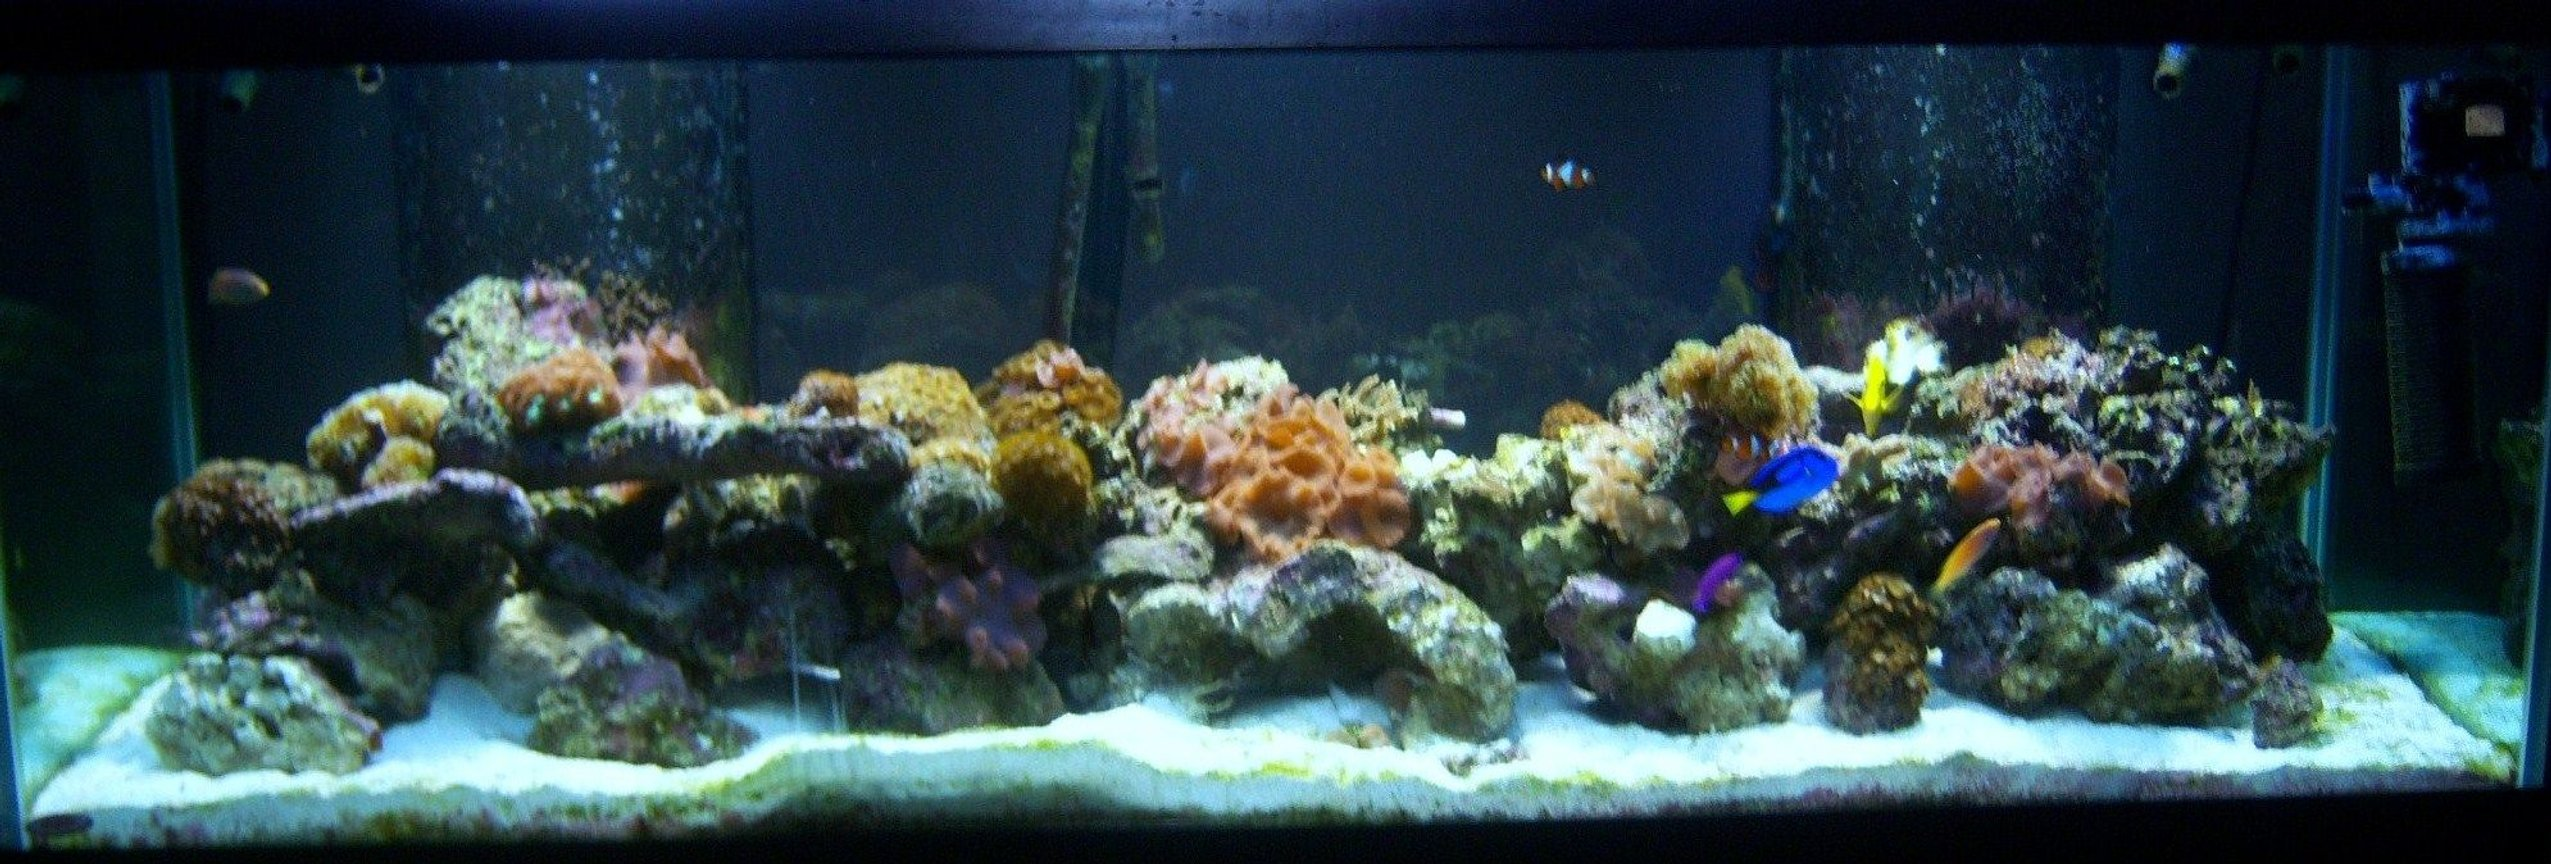 180 gallons reef tank (mostly live coral and fish) - Reef